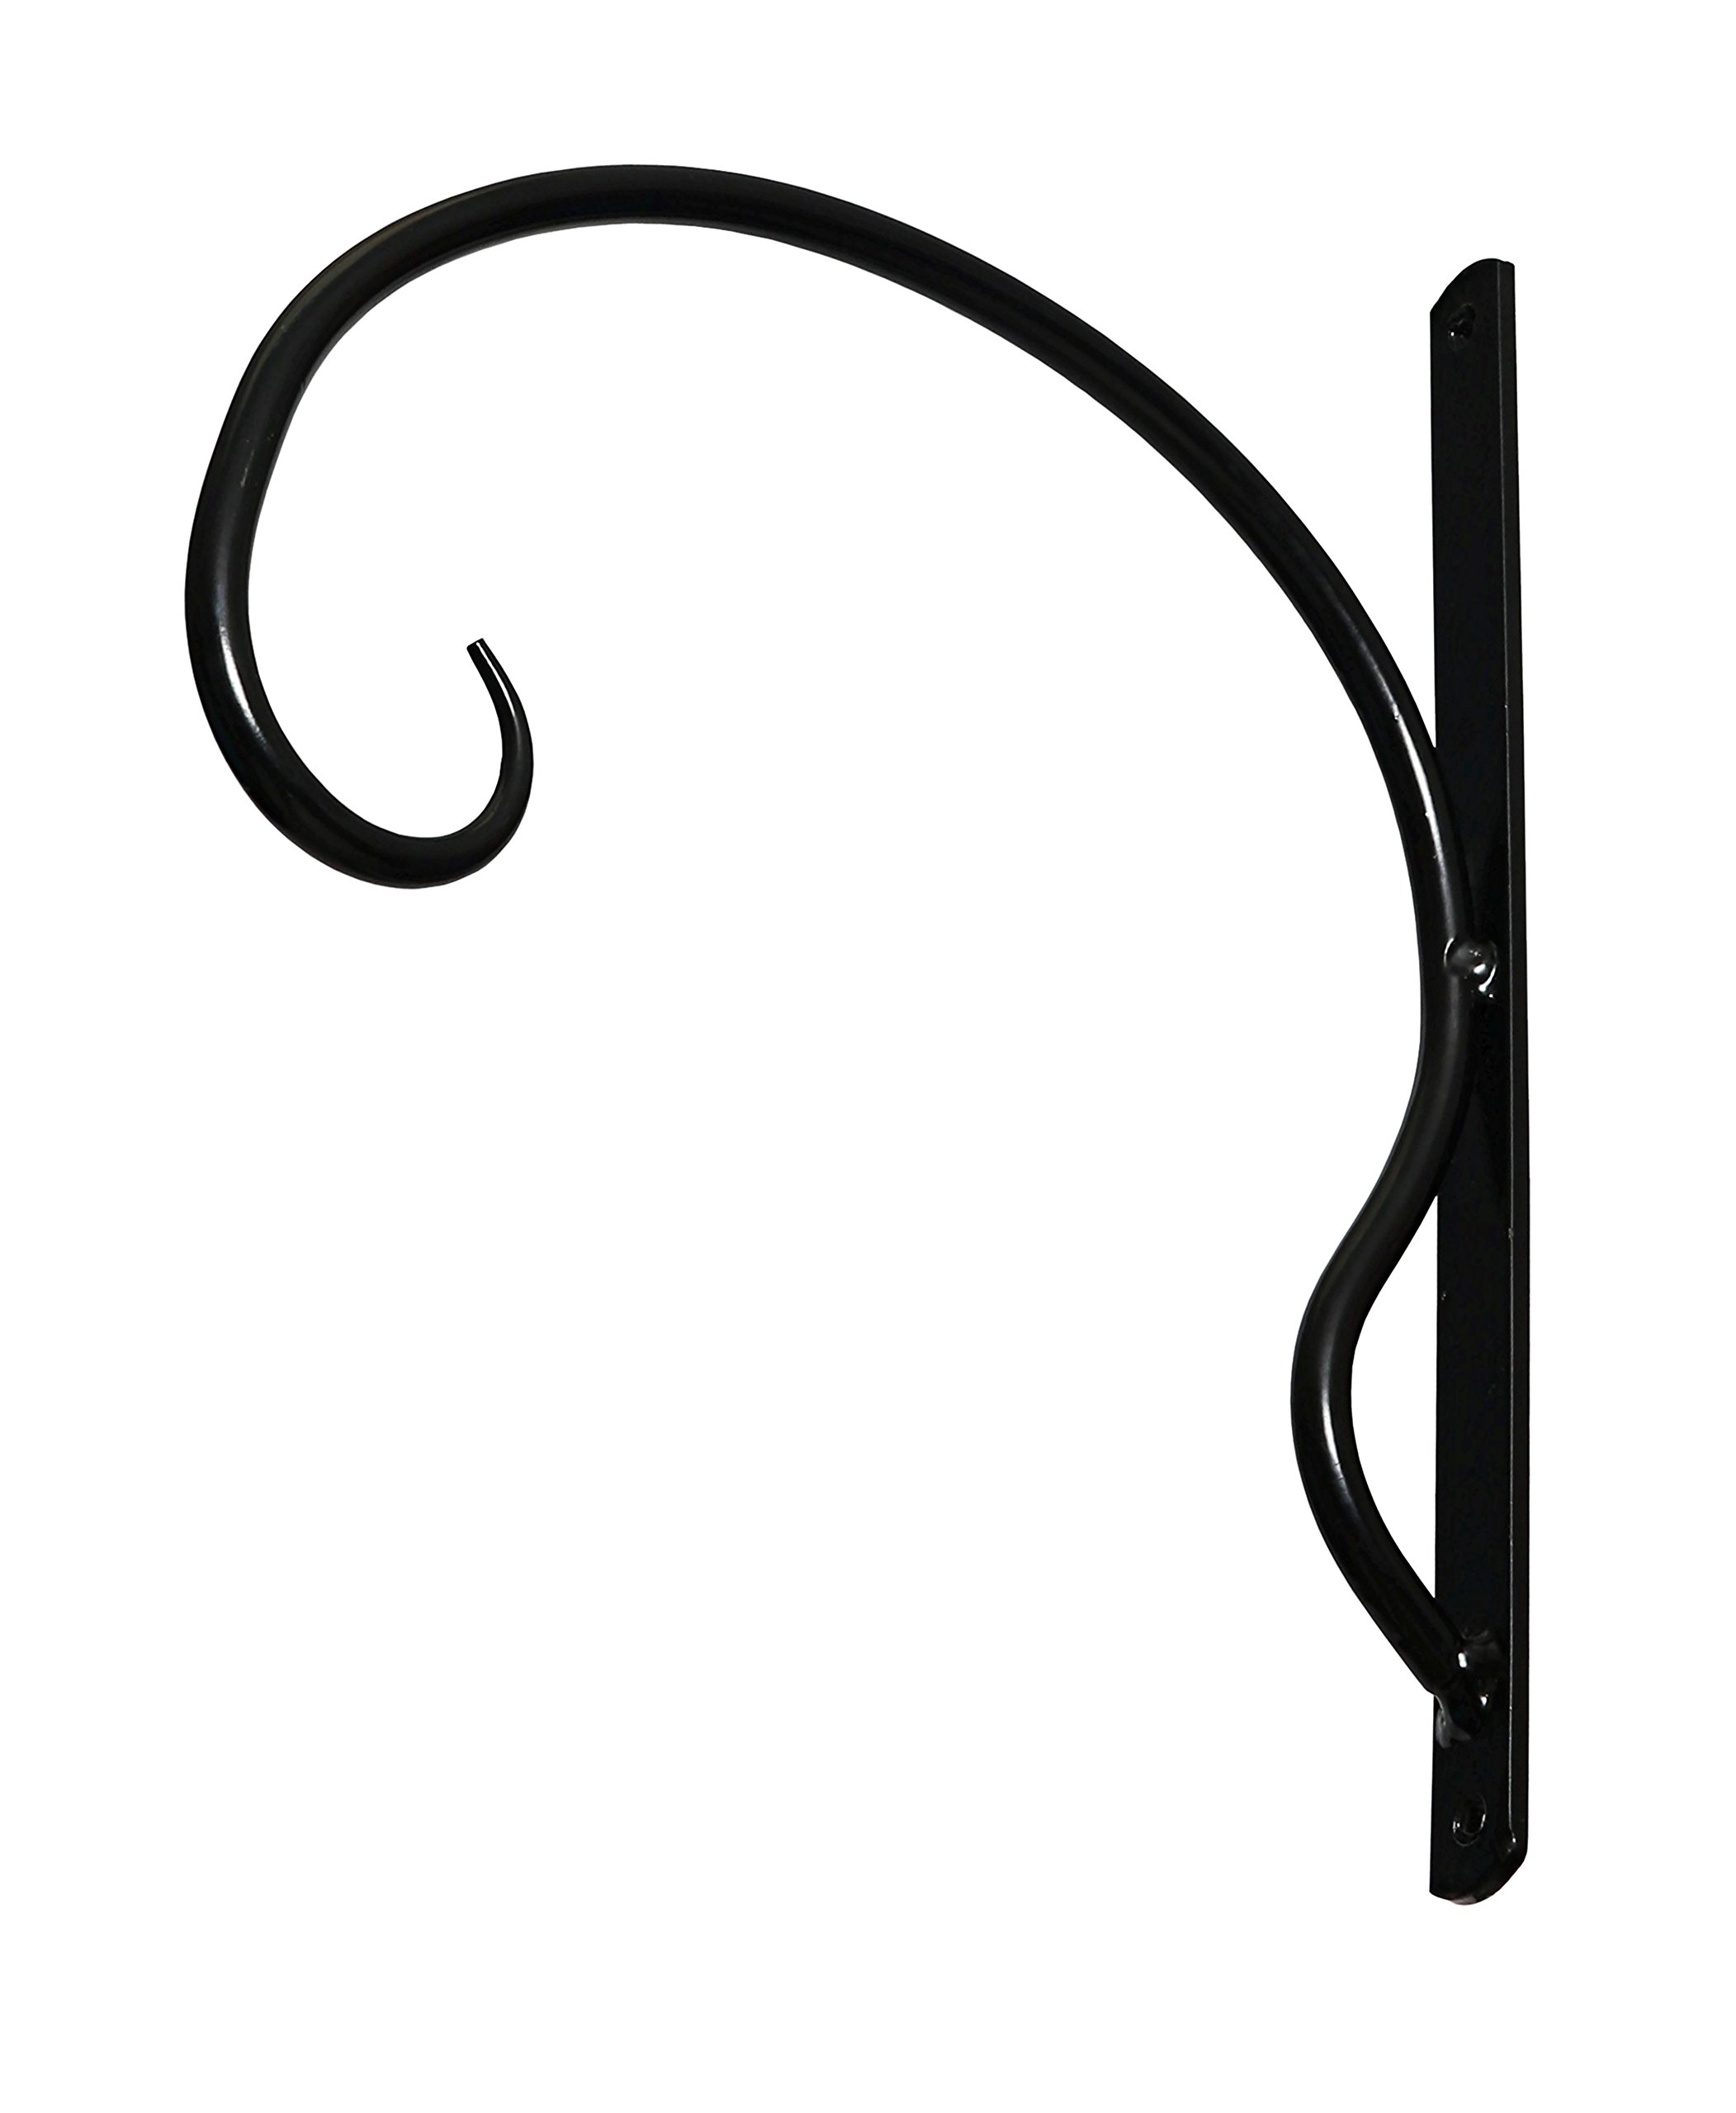 Exceptionally Sturdy, Iron Hanger for Heavy Duty Doodads, Elegant Hook/Bracket for Hanging Wind Chimes, Plants, Wind Spinners, Bird Feeders, Great for Easy Enhancements to Indoor & Outdoor Décor by UpBlend Outdoors